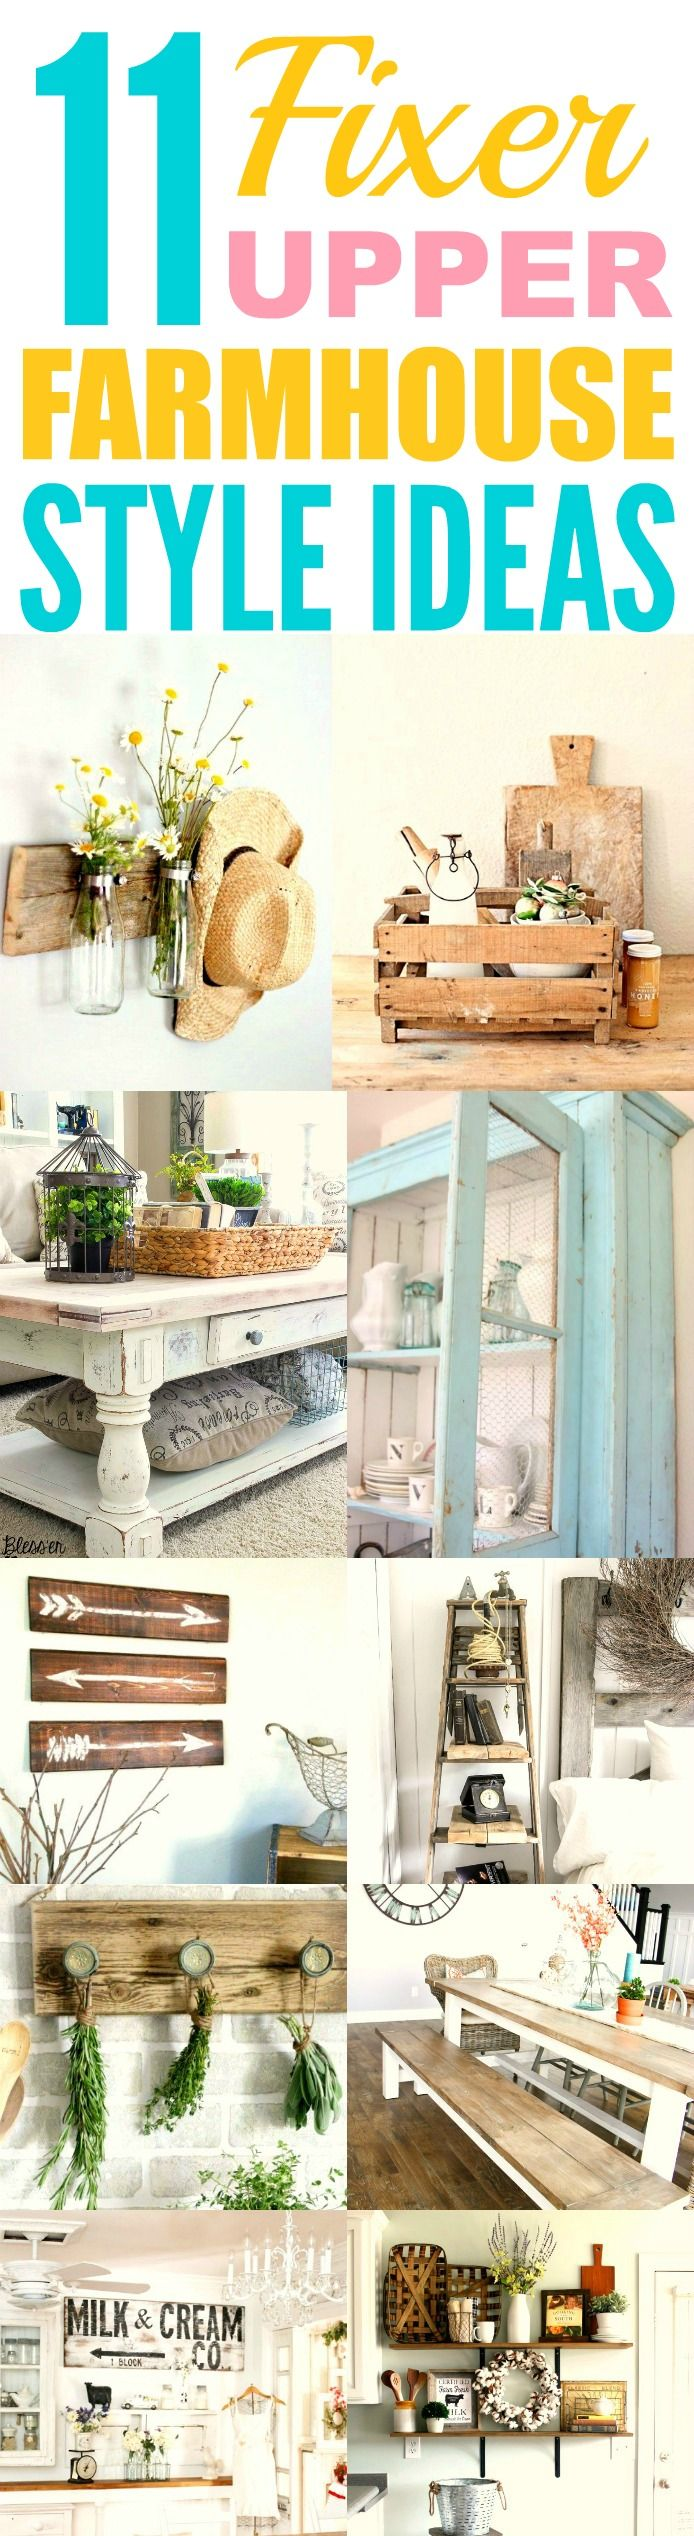 11 Brilliant Fixer Upper Style Farmhouse DIY Projects - Chasing Foxes